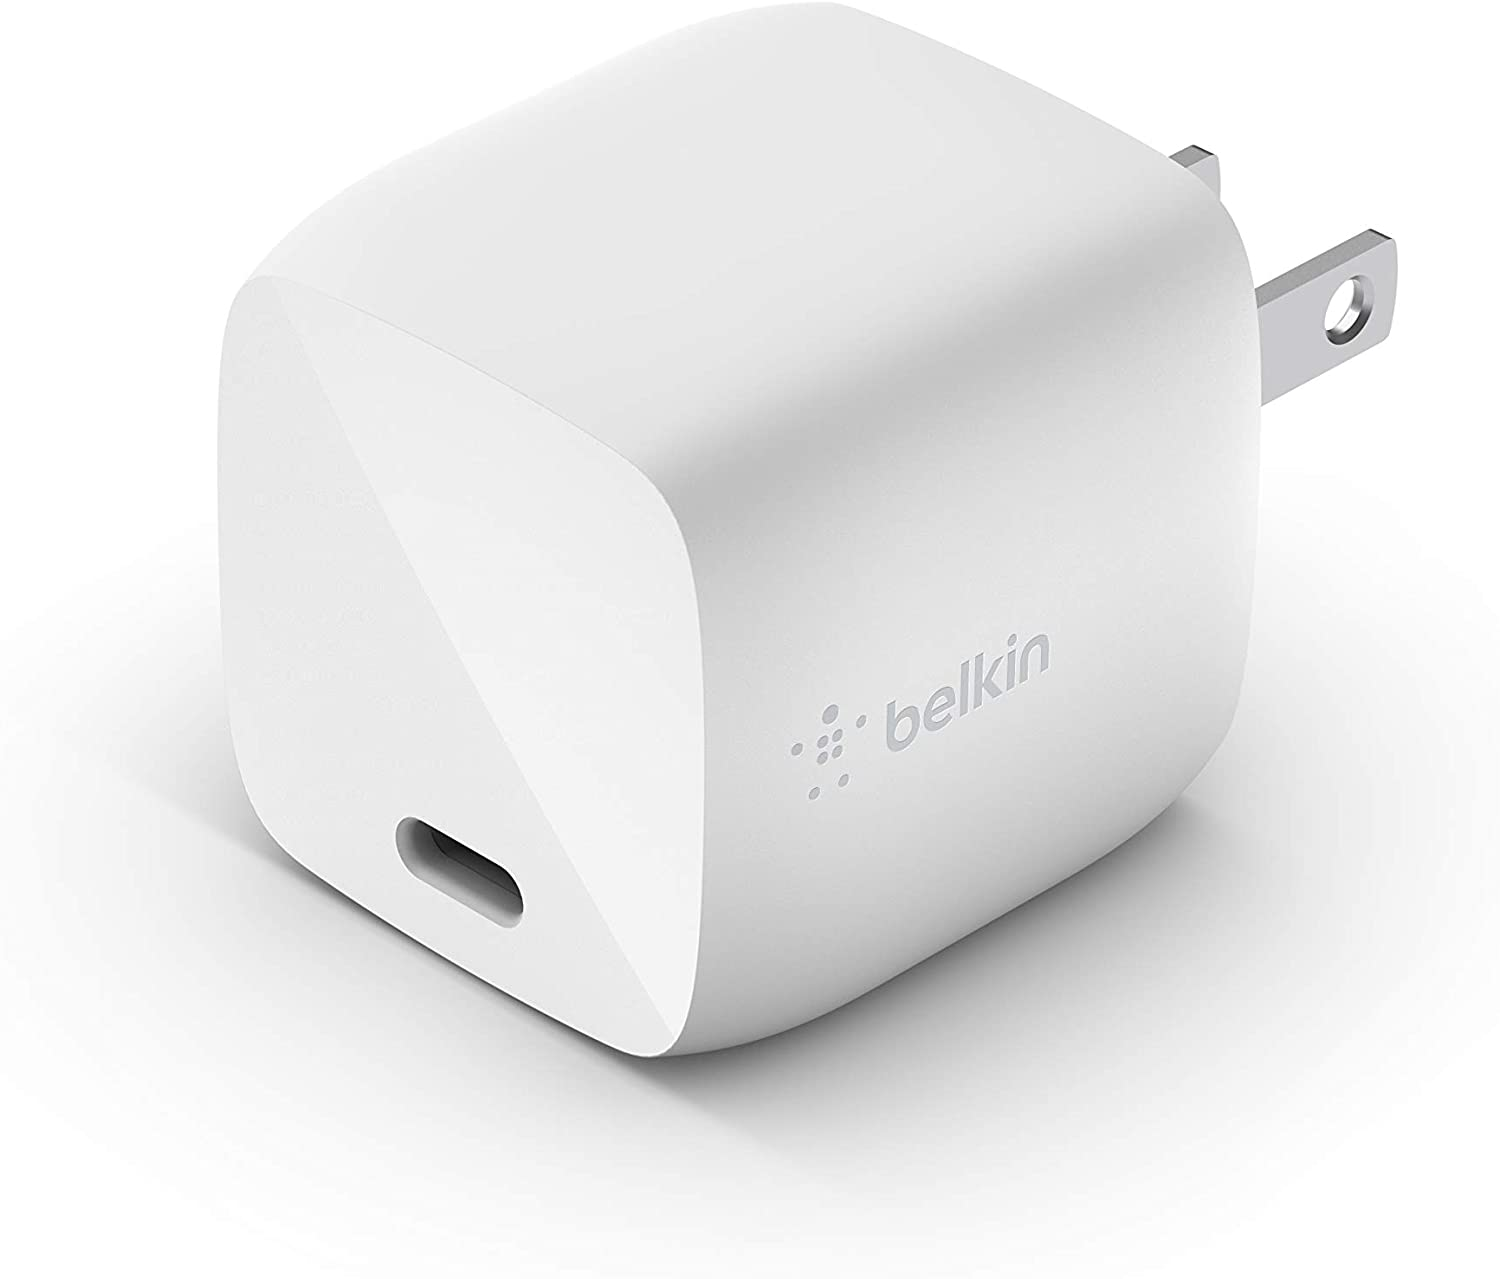 Belkin USB-PD GaN Charger 30W (USB-C Fast Charger Designed for iPhone, MacBook Air, iPad Pro, Pixel, Galaxy, More) iPhone Fast Charger, USB-C Power Delivery (WCH001dqWH)